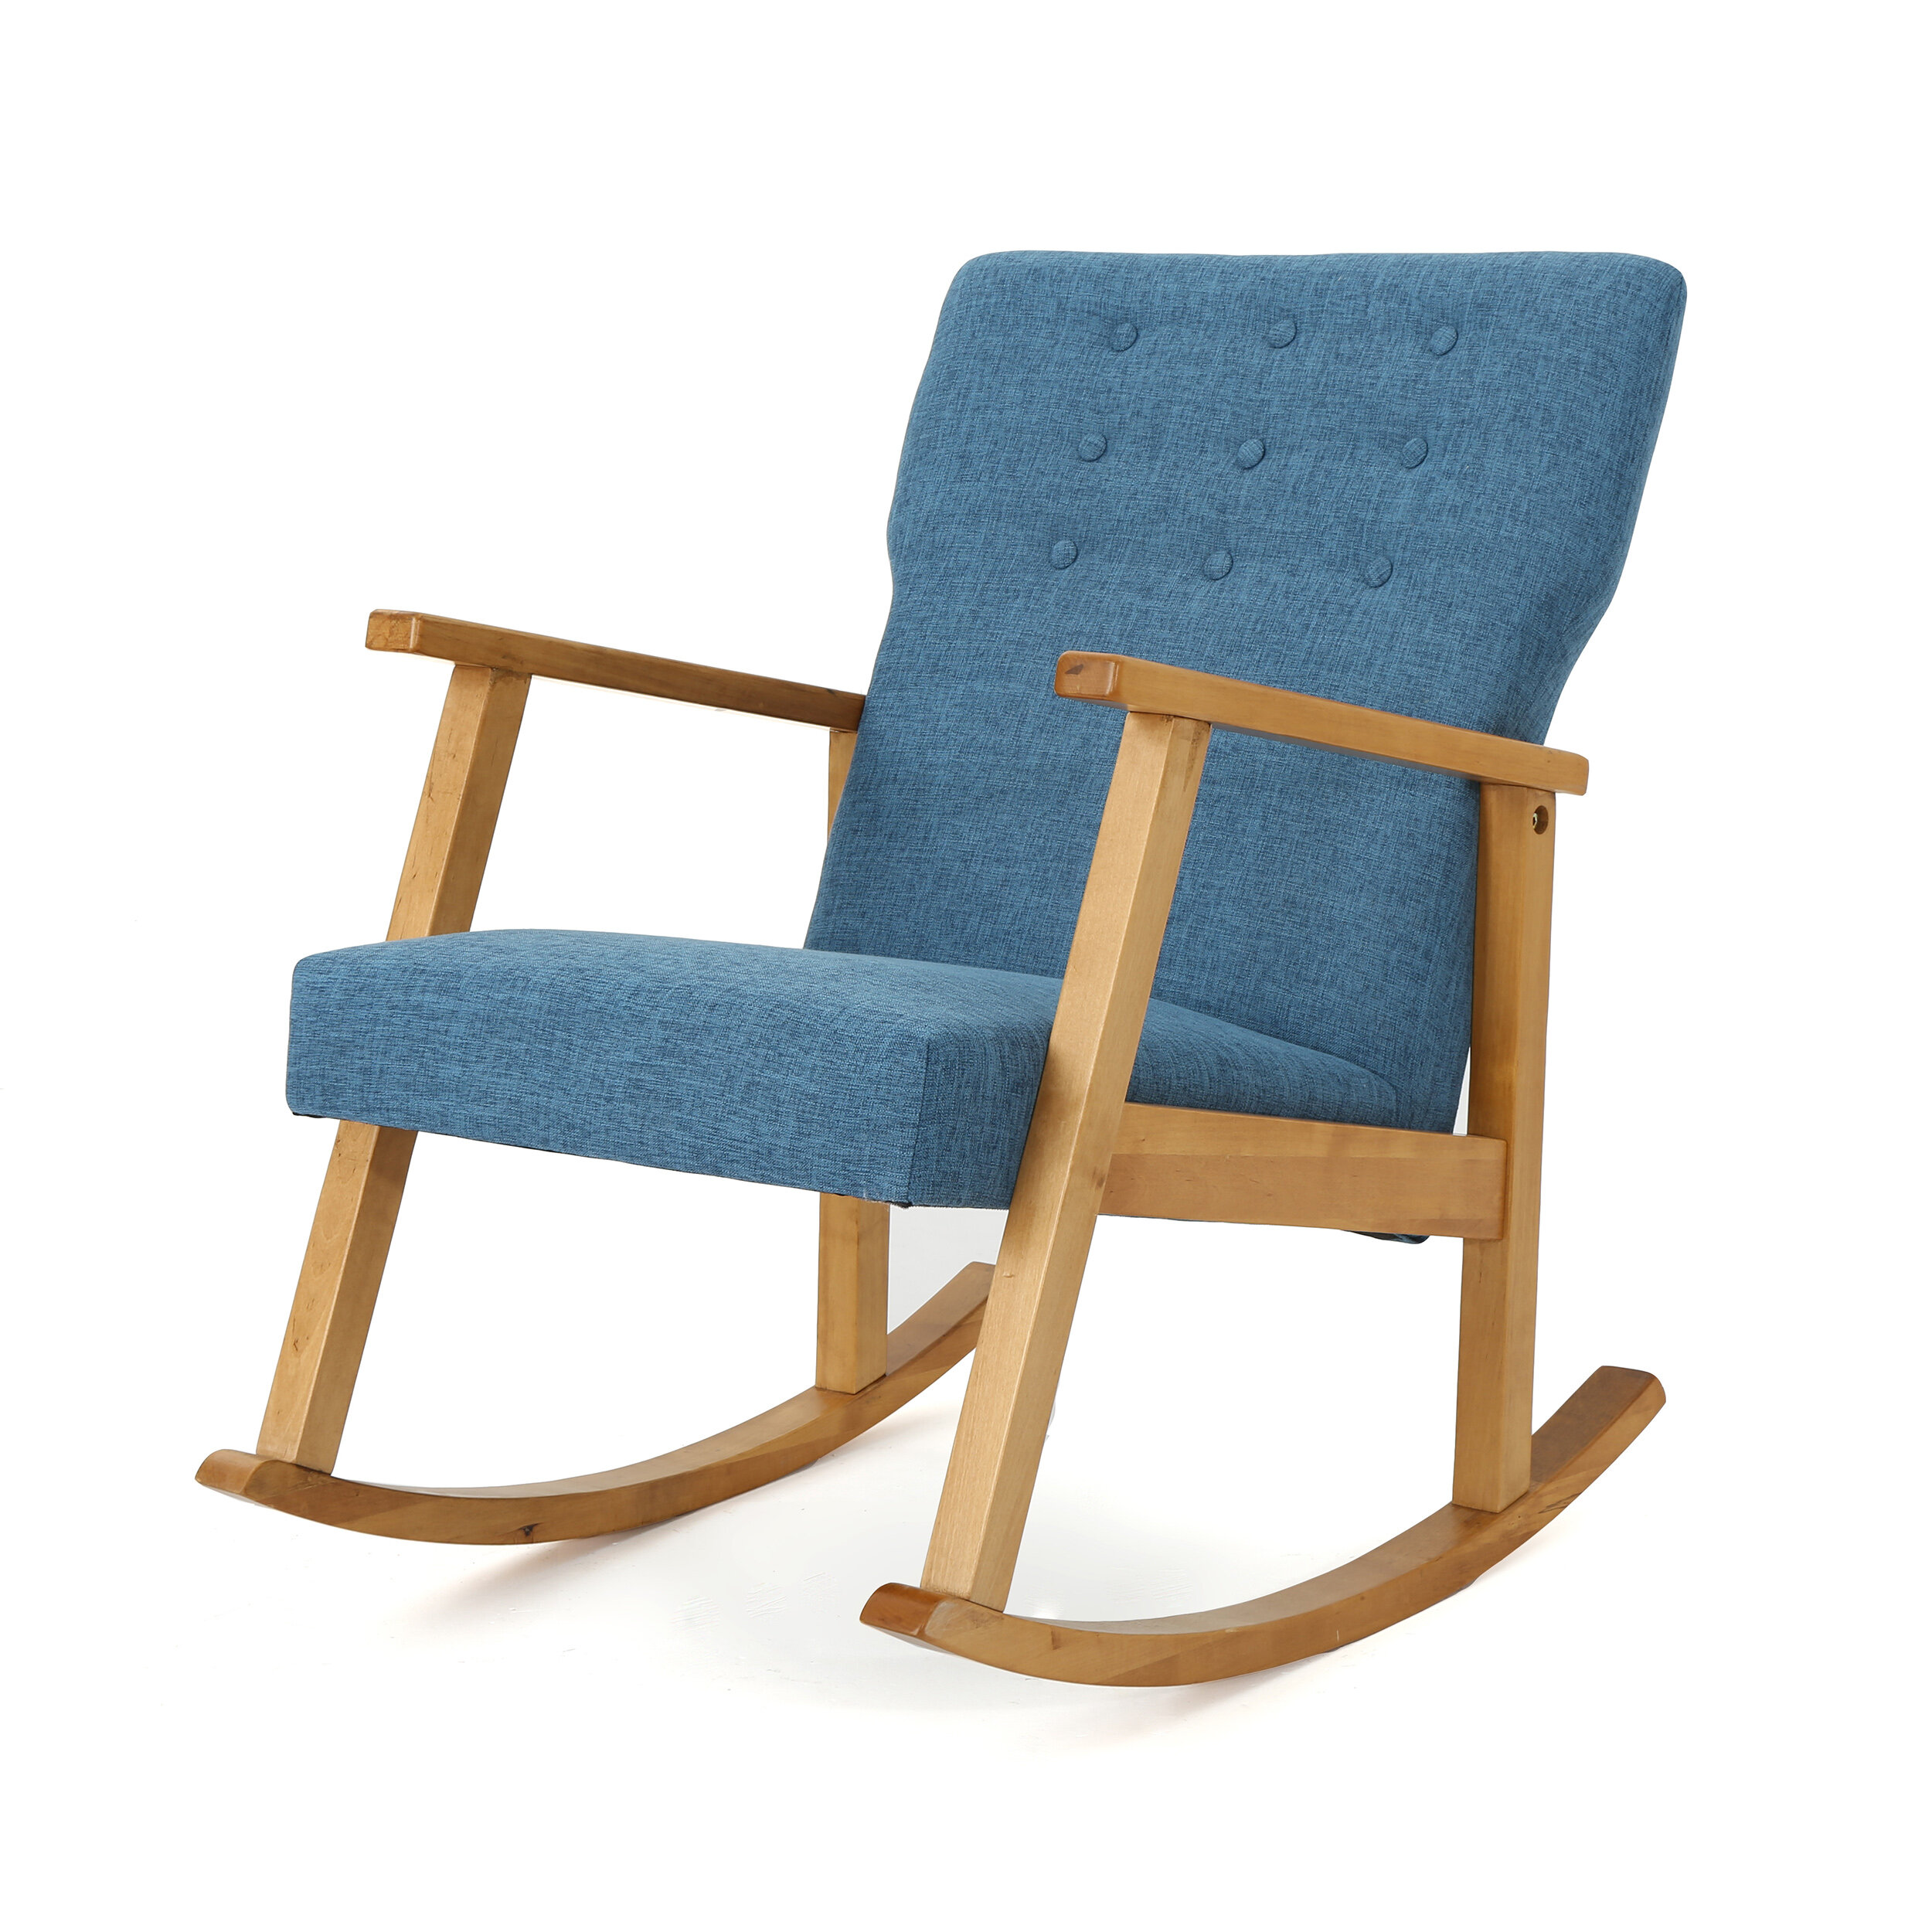 Outstanding Nerstrand Rocking Chair Download Free Architecture Designs Scobabritishbridgeorg